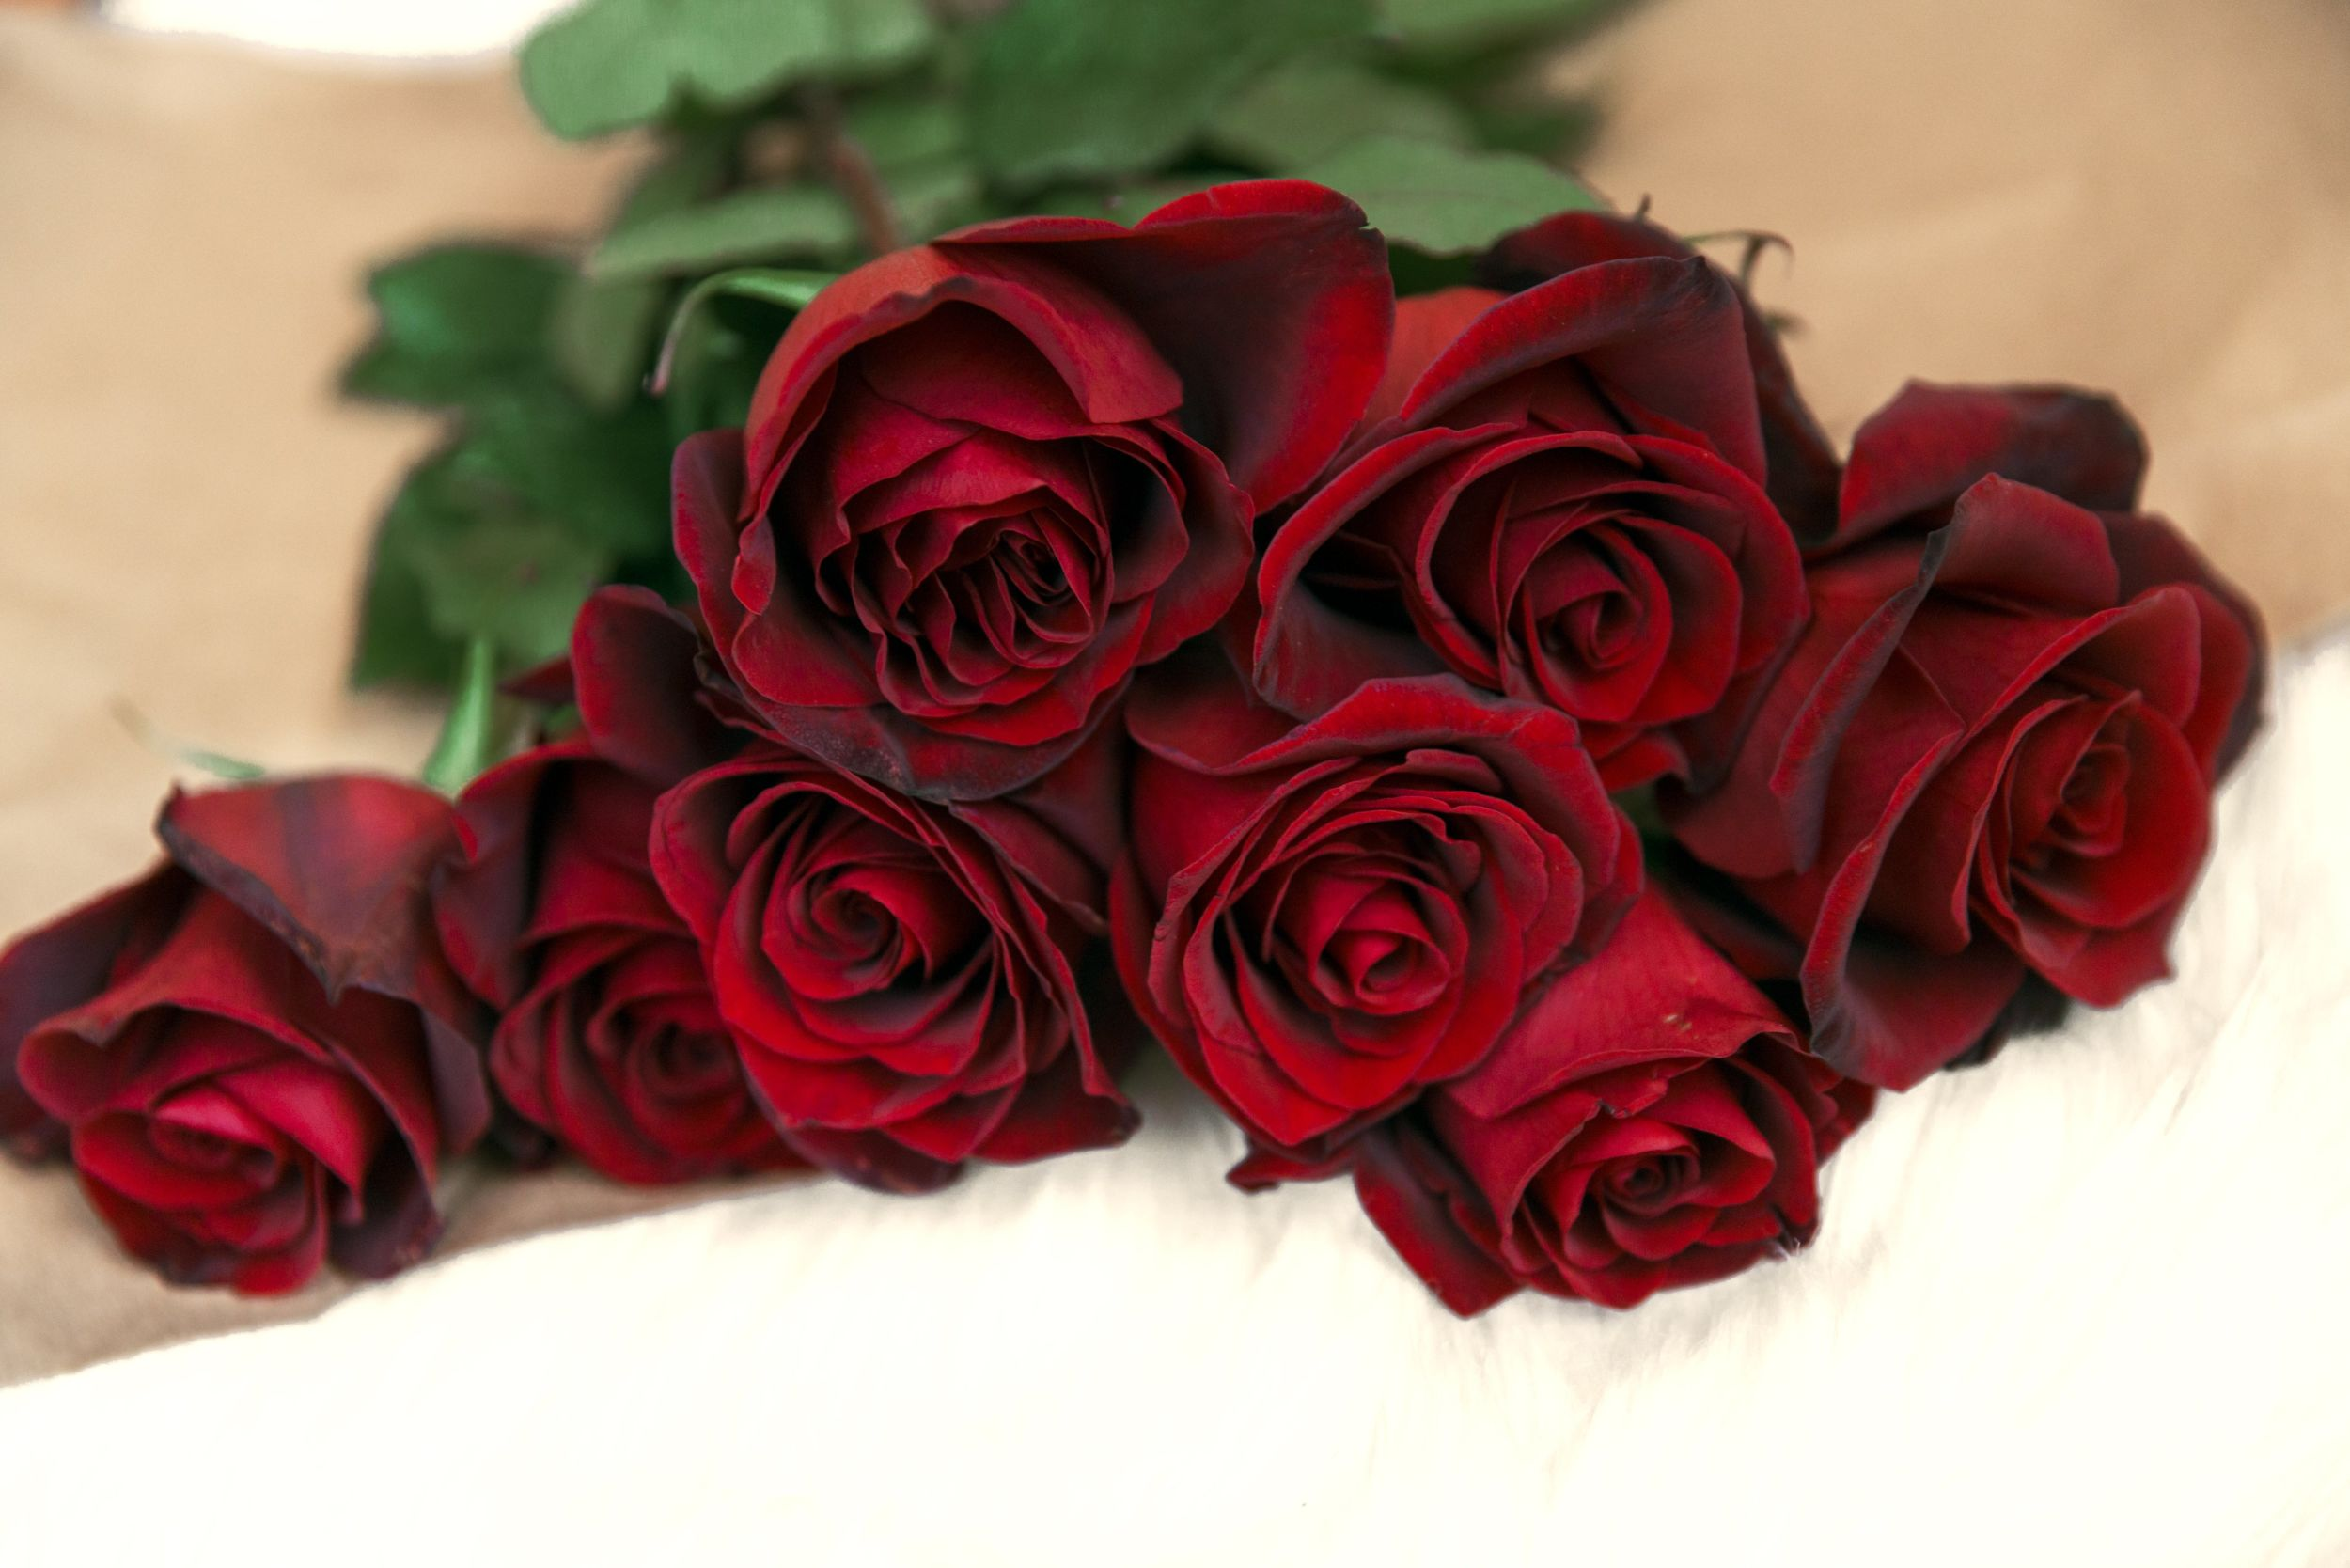 red-rose-bouquet-on-table